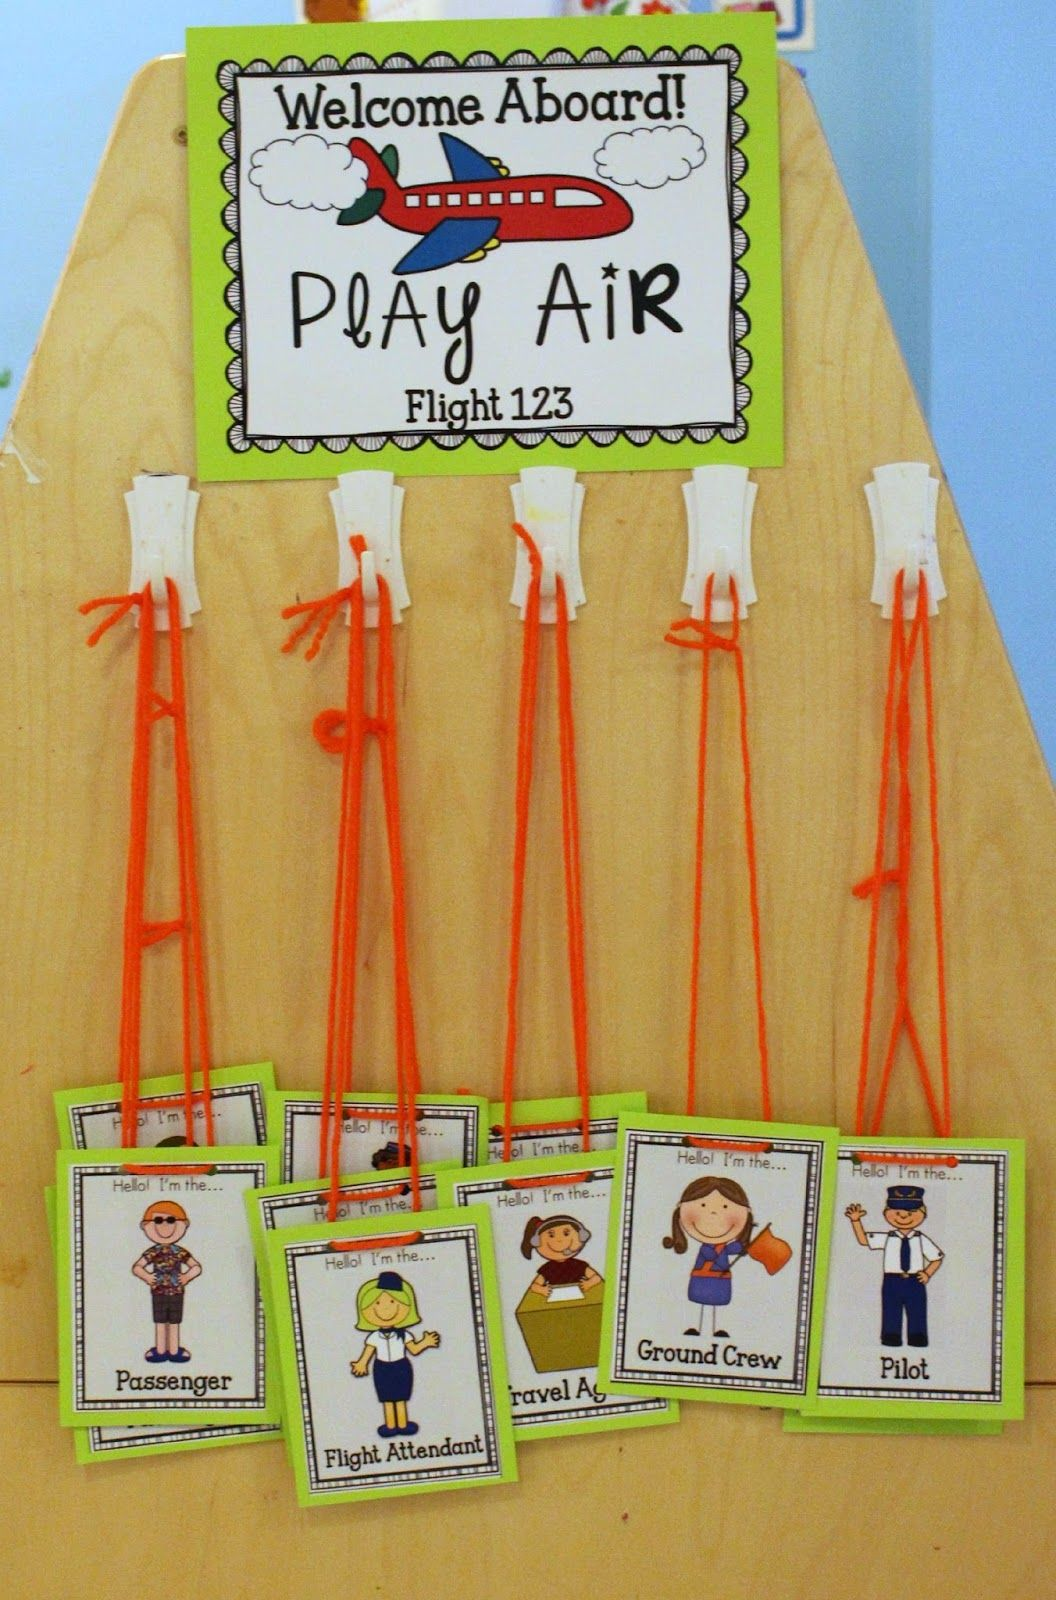 Airport Dramatic Play Center | Lesson Plans | Pinterest ...